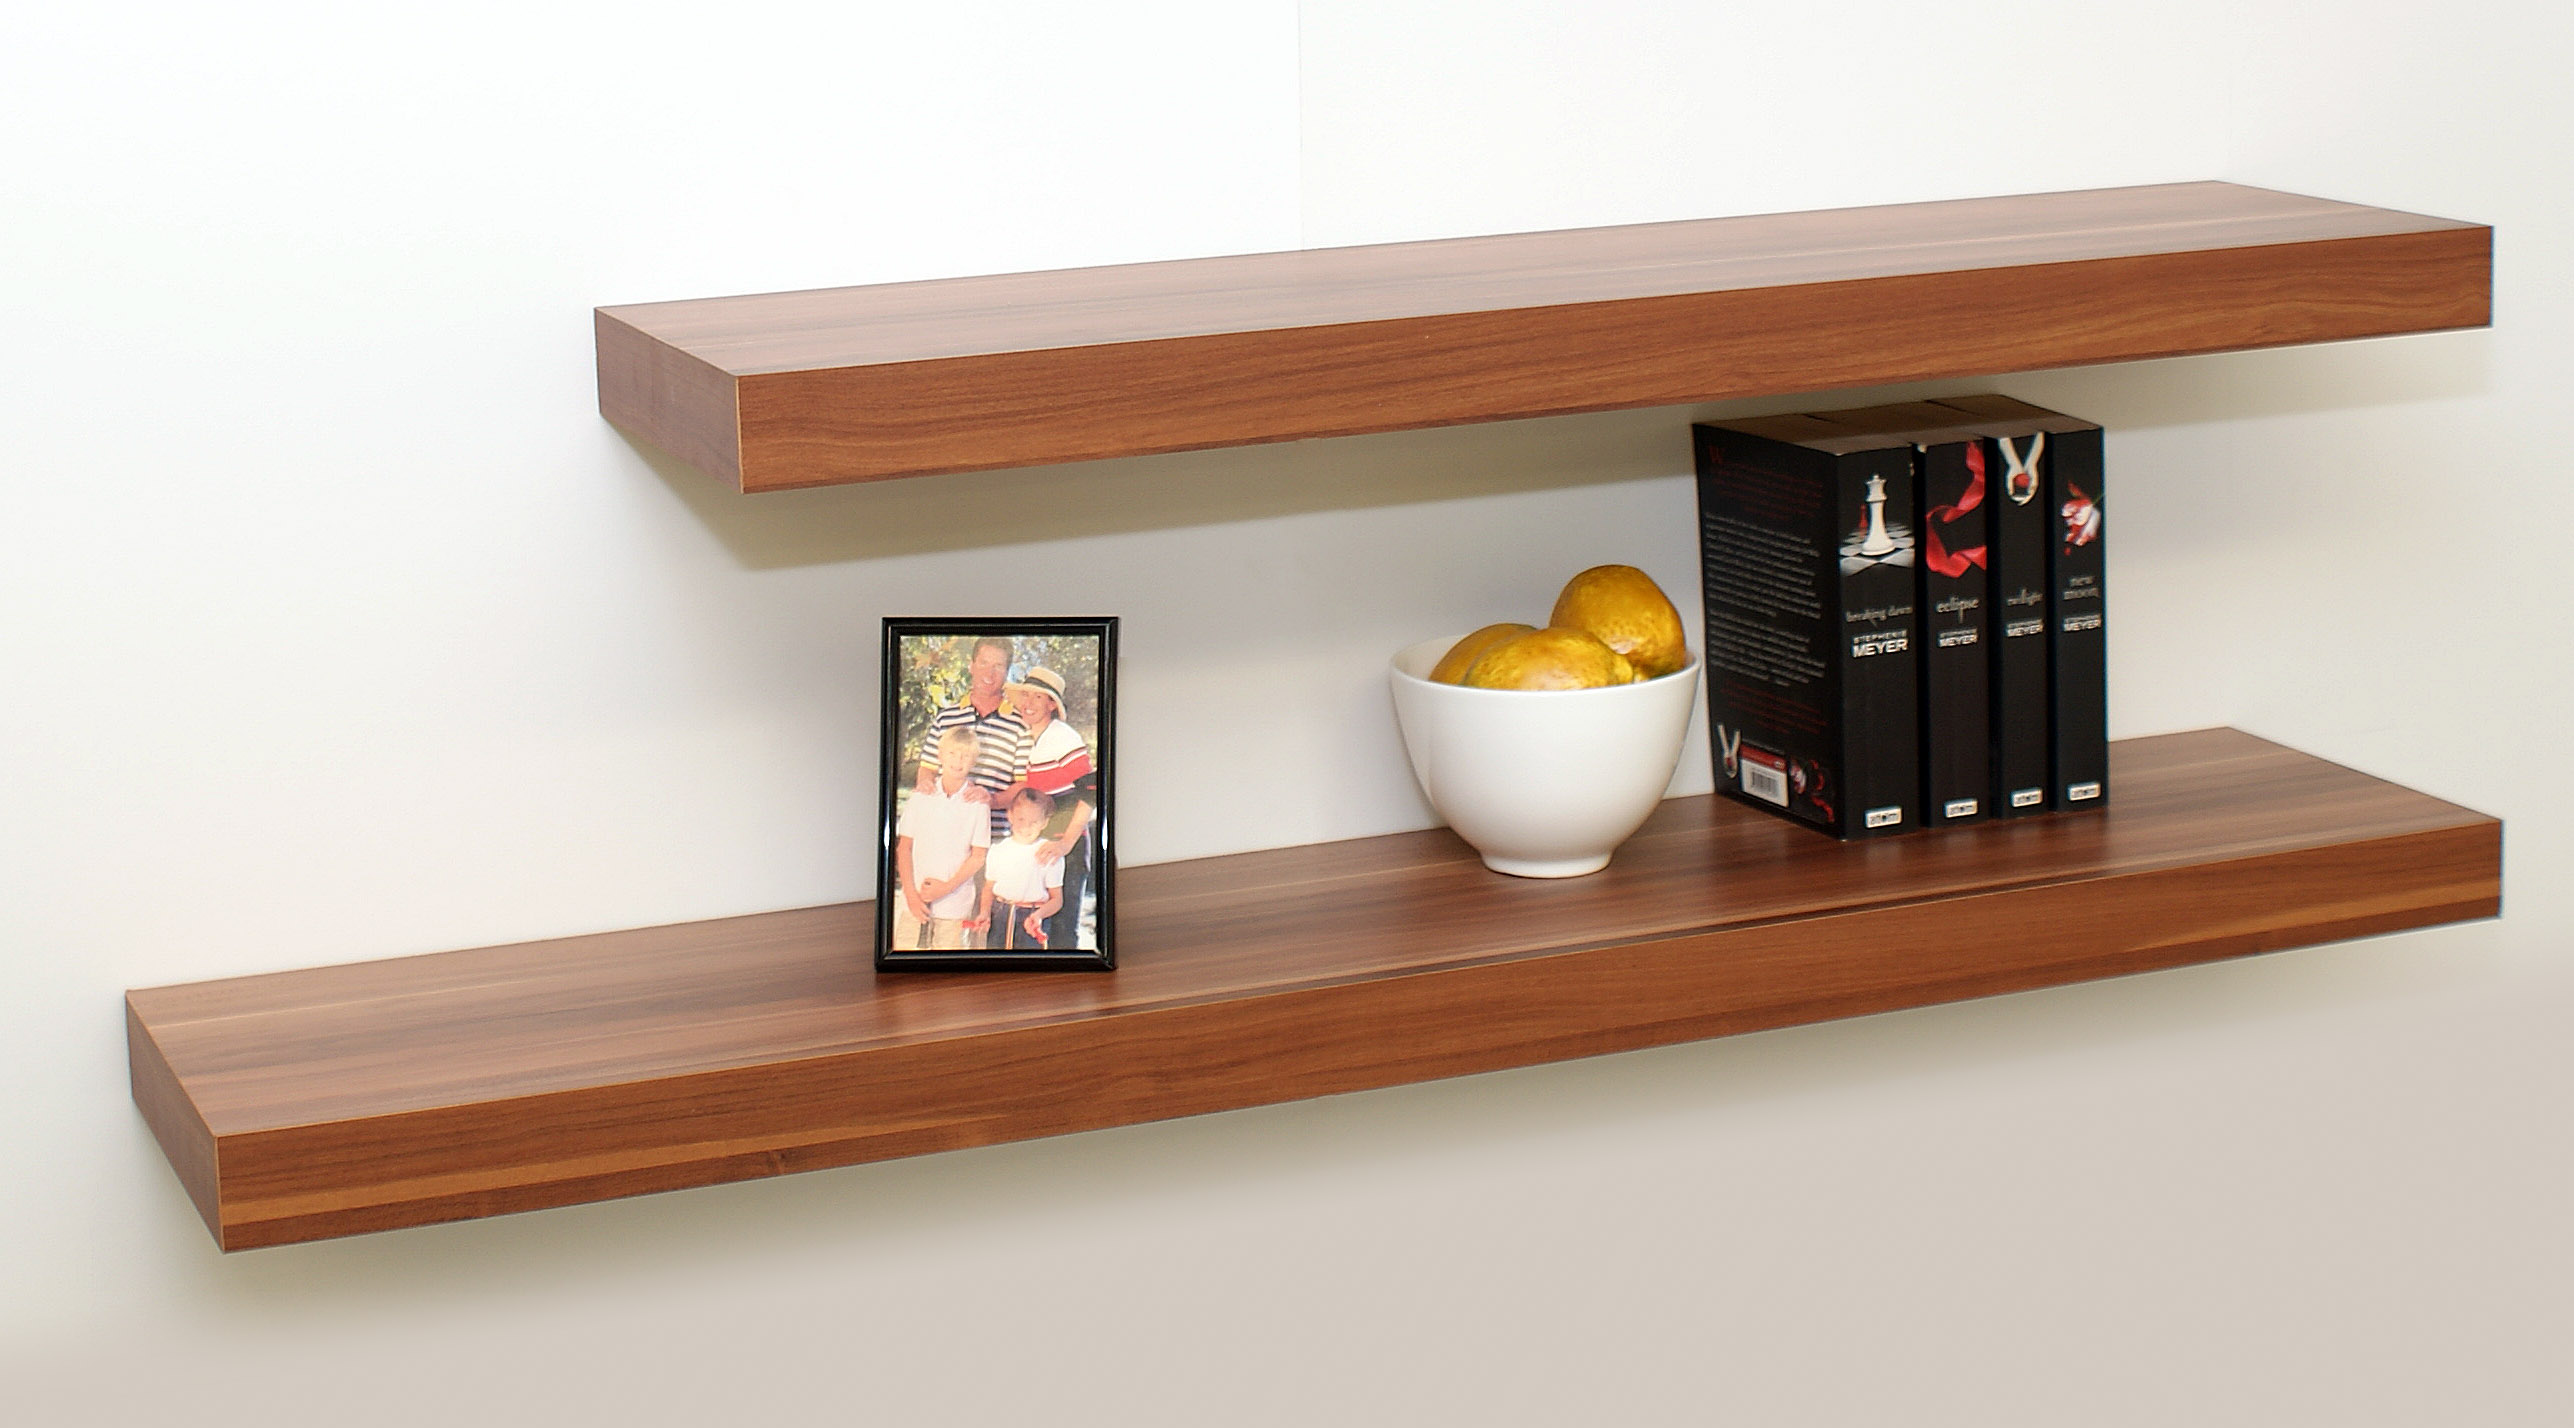 floating shelves 1150 900x250x50 double deal